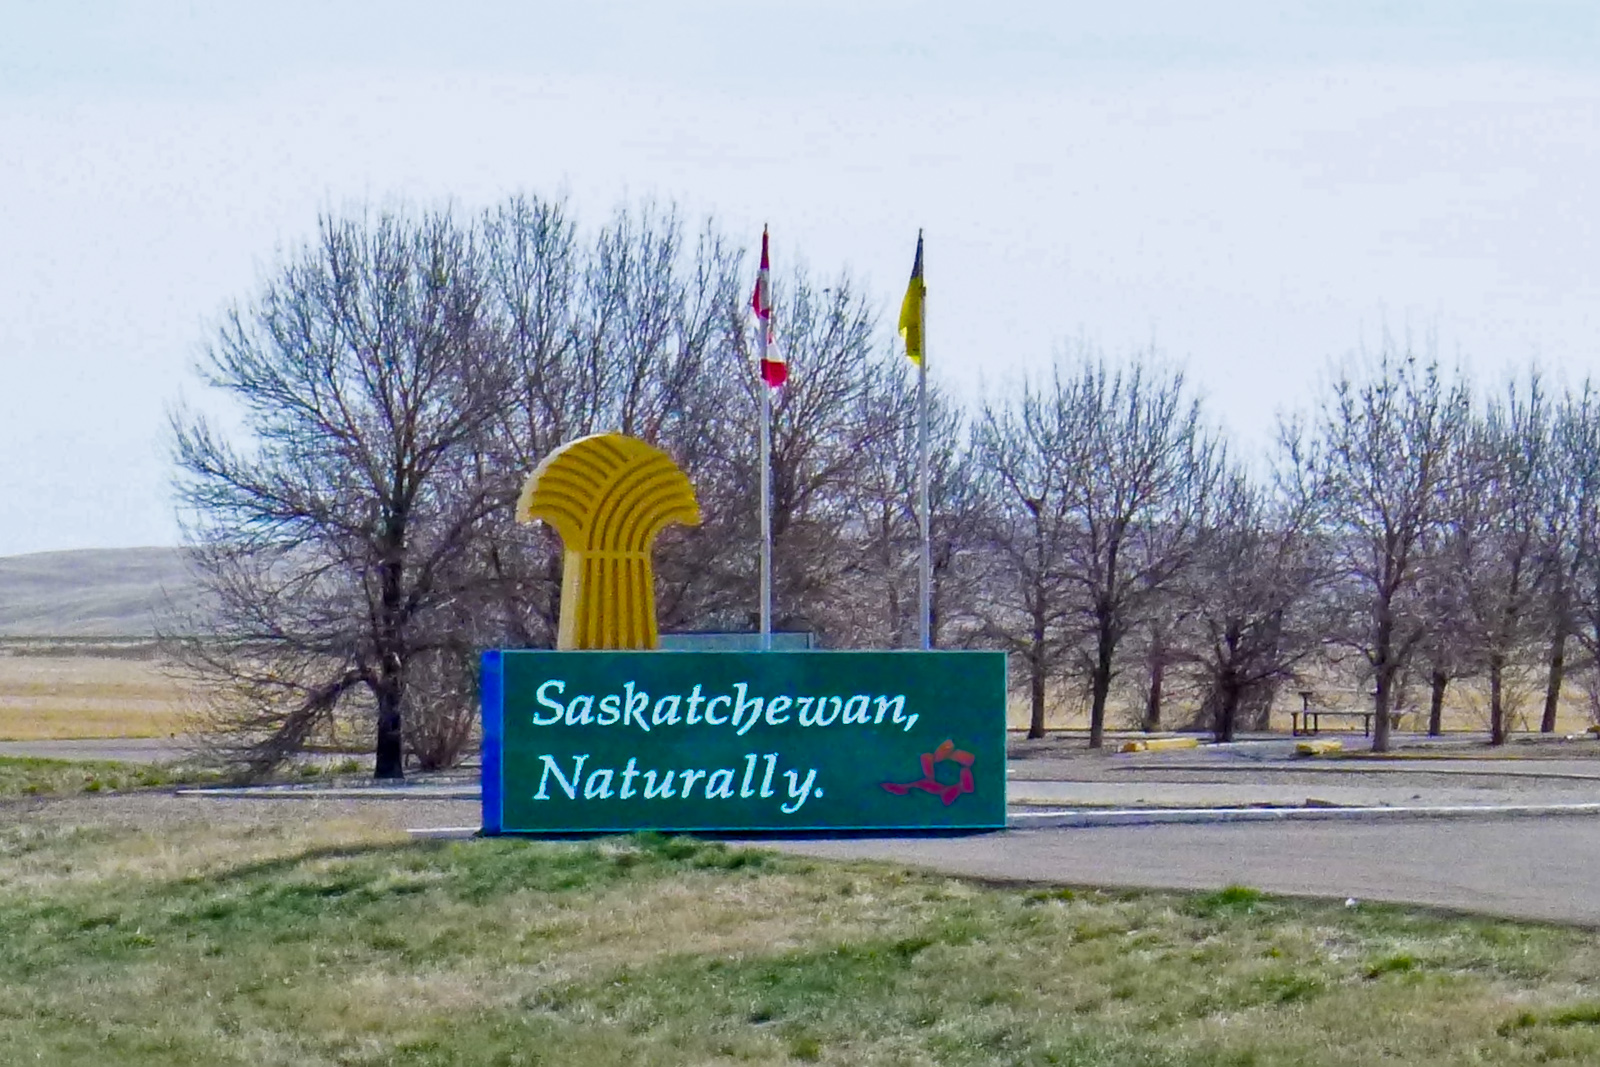 Saskatchewan has issued out 138 invites for qualified candidates to apply for provincial nomination to get permanent residence in Canada